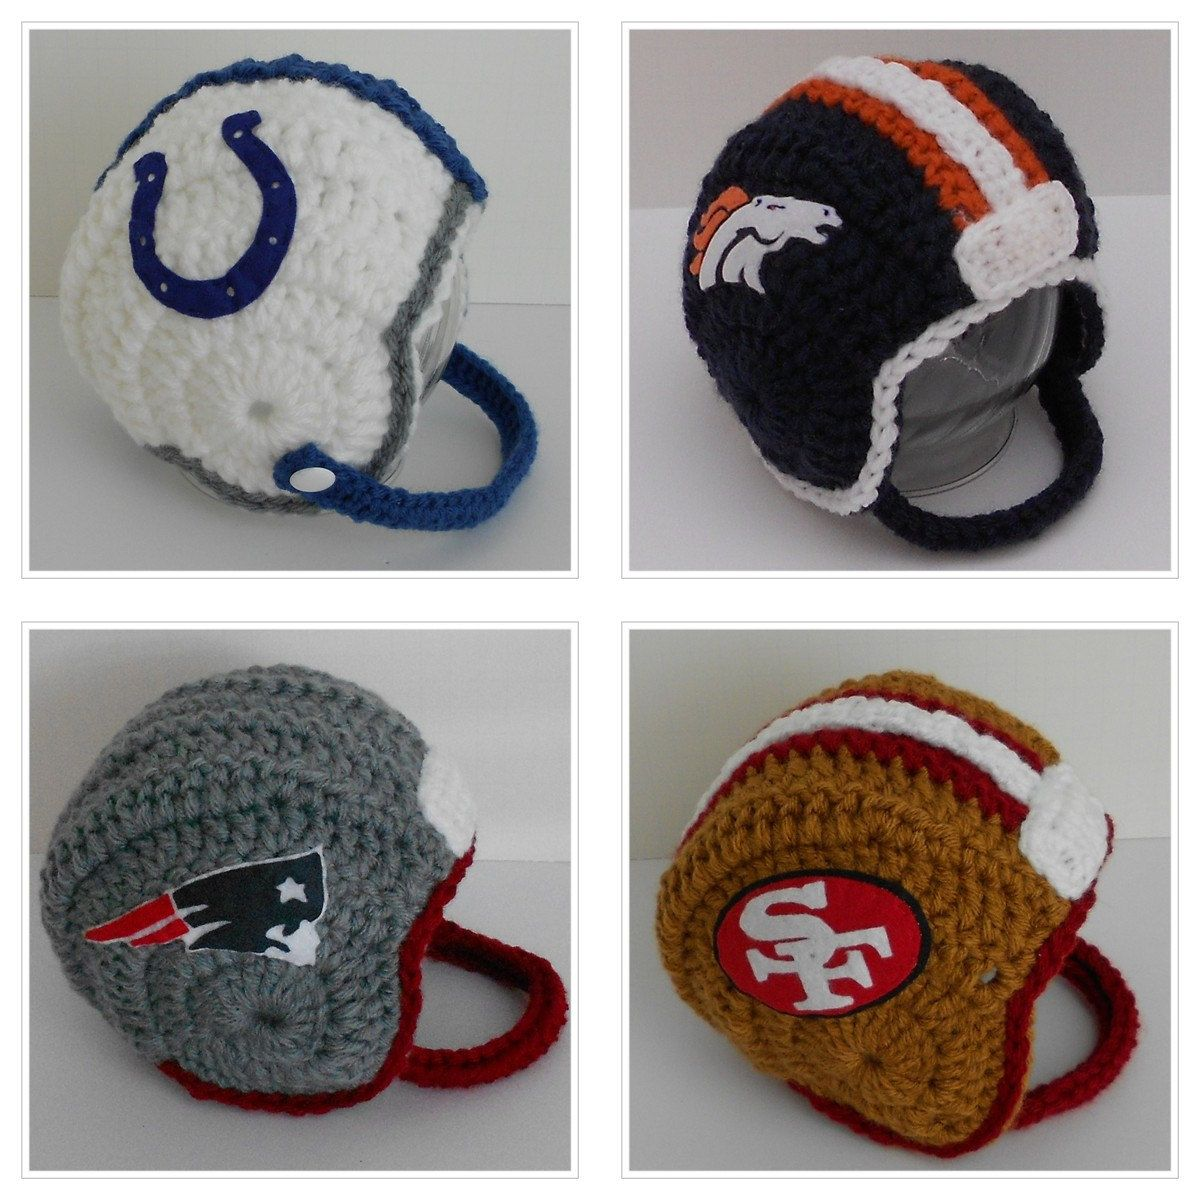 Crochet Baby Football Helmet Choose Your Team 3895 Via Etsy